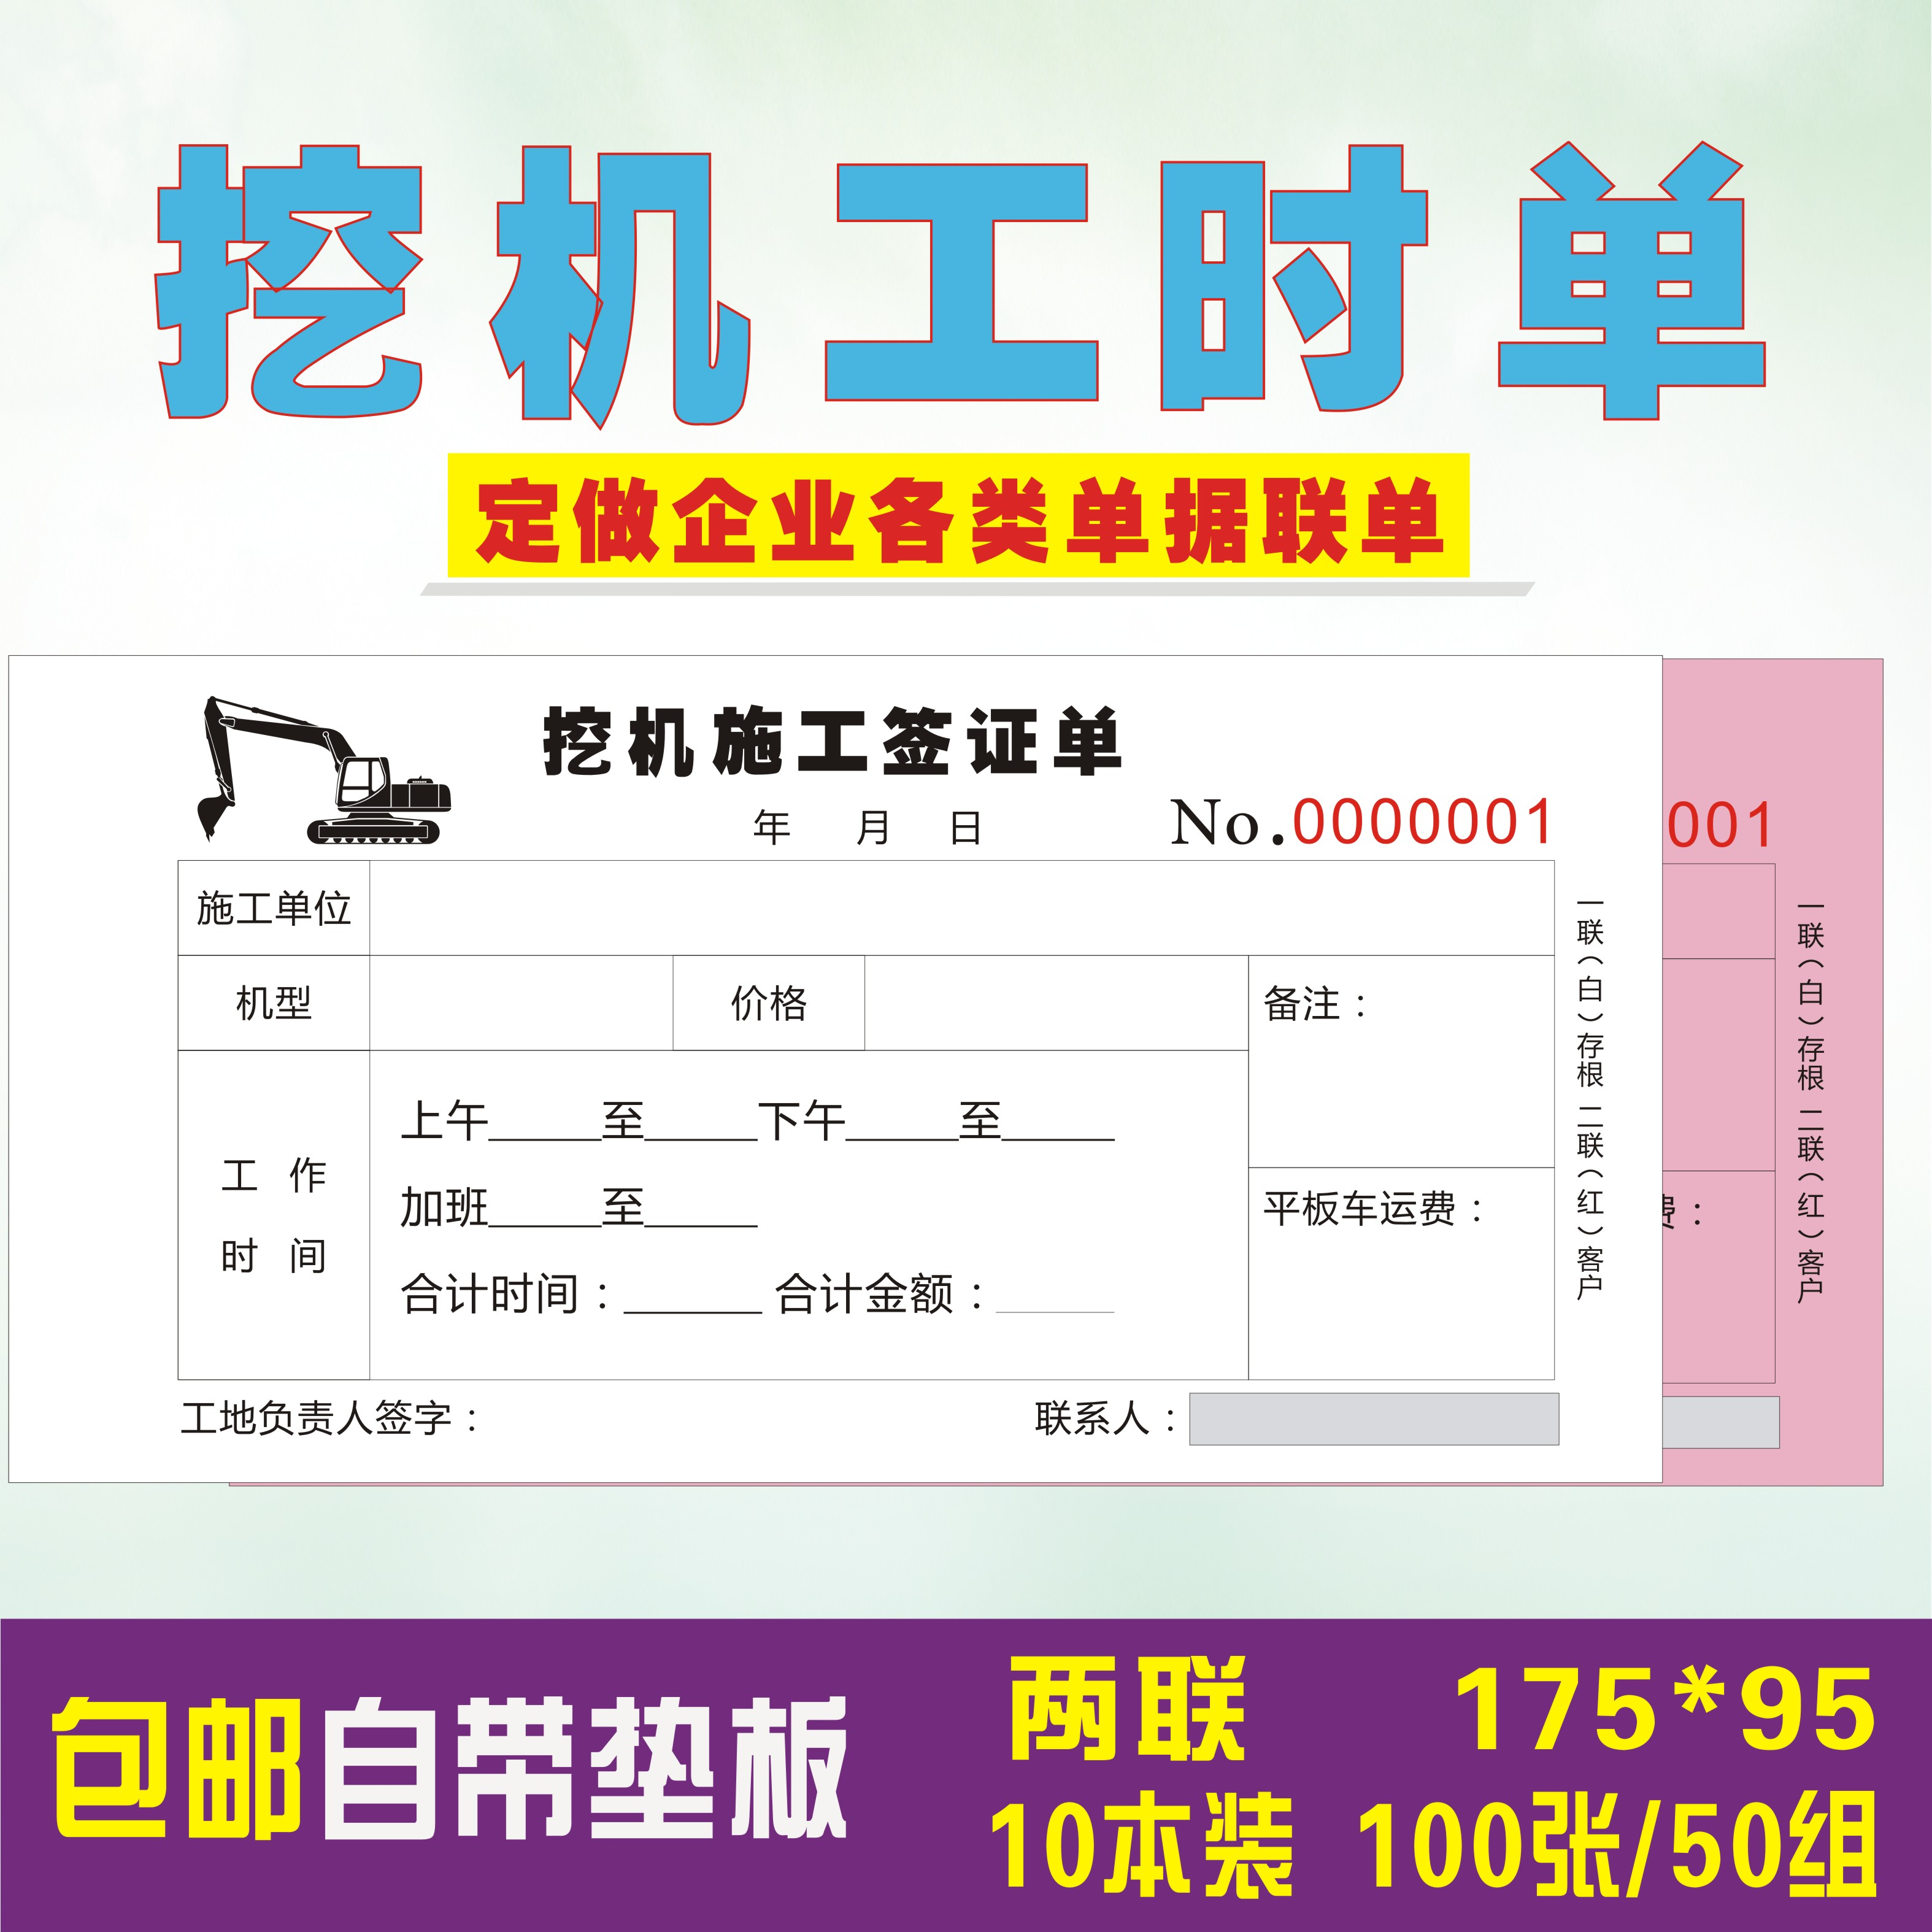 Excavator shift time visa form two copies of excavator construction time settlement sheet three copies of mechanical work receipt of this engineering machinery rental settlement receipt customized